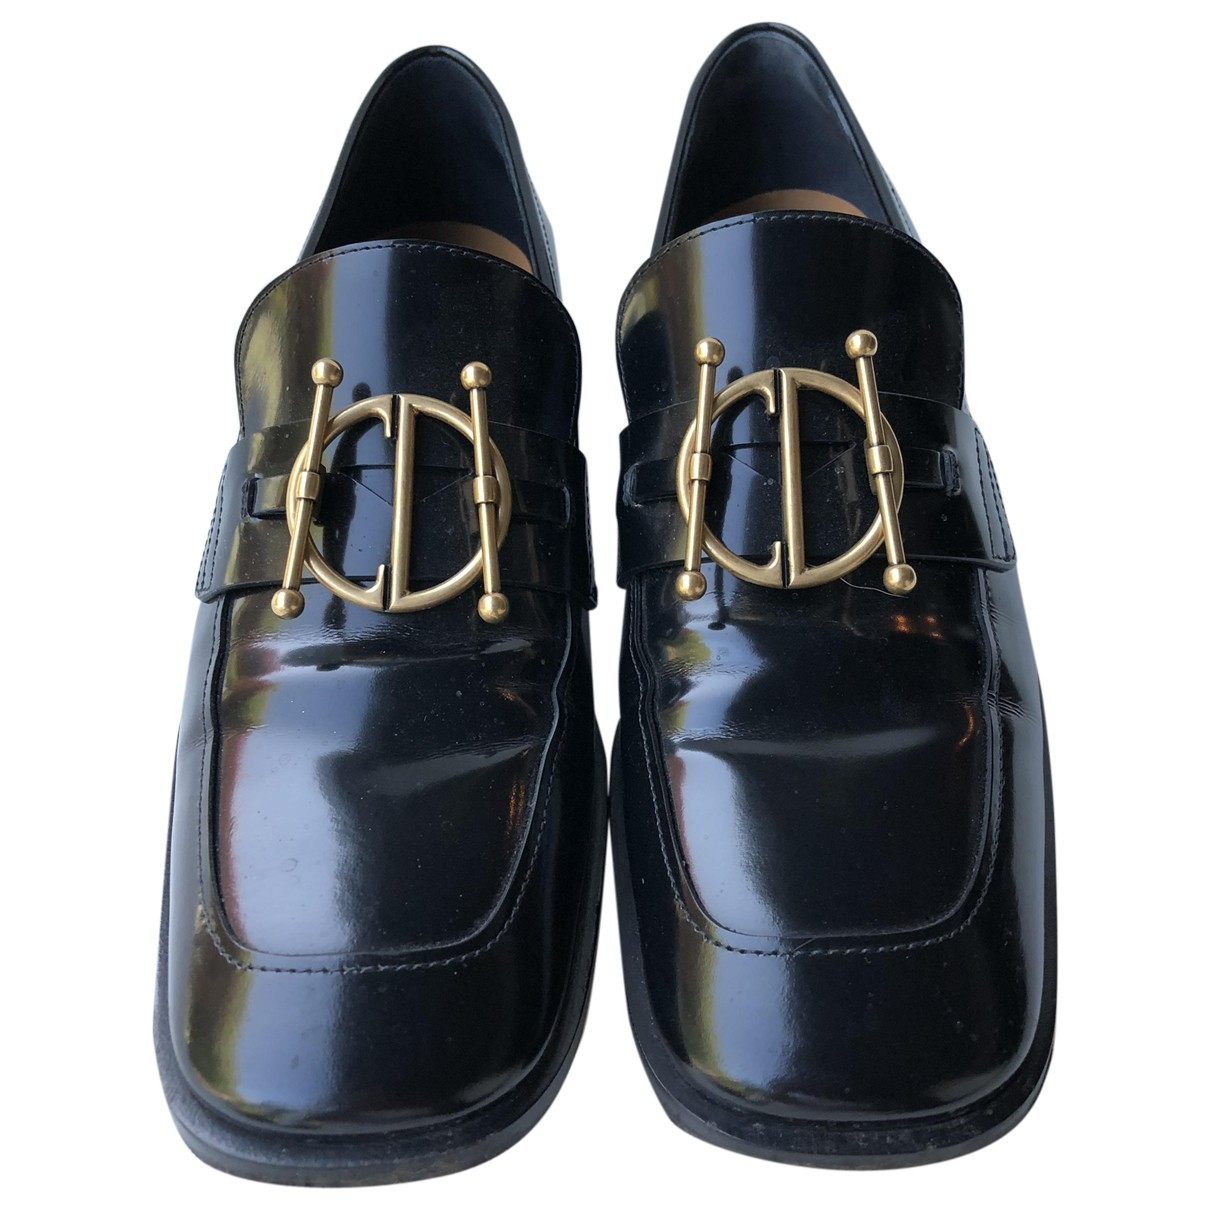 Dior DiorDirection Black Patent leather Flats for Women 38 EU